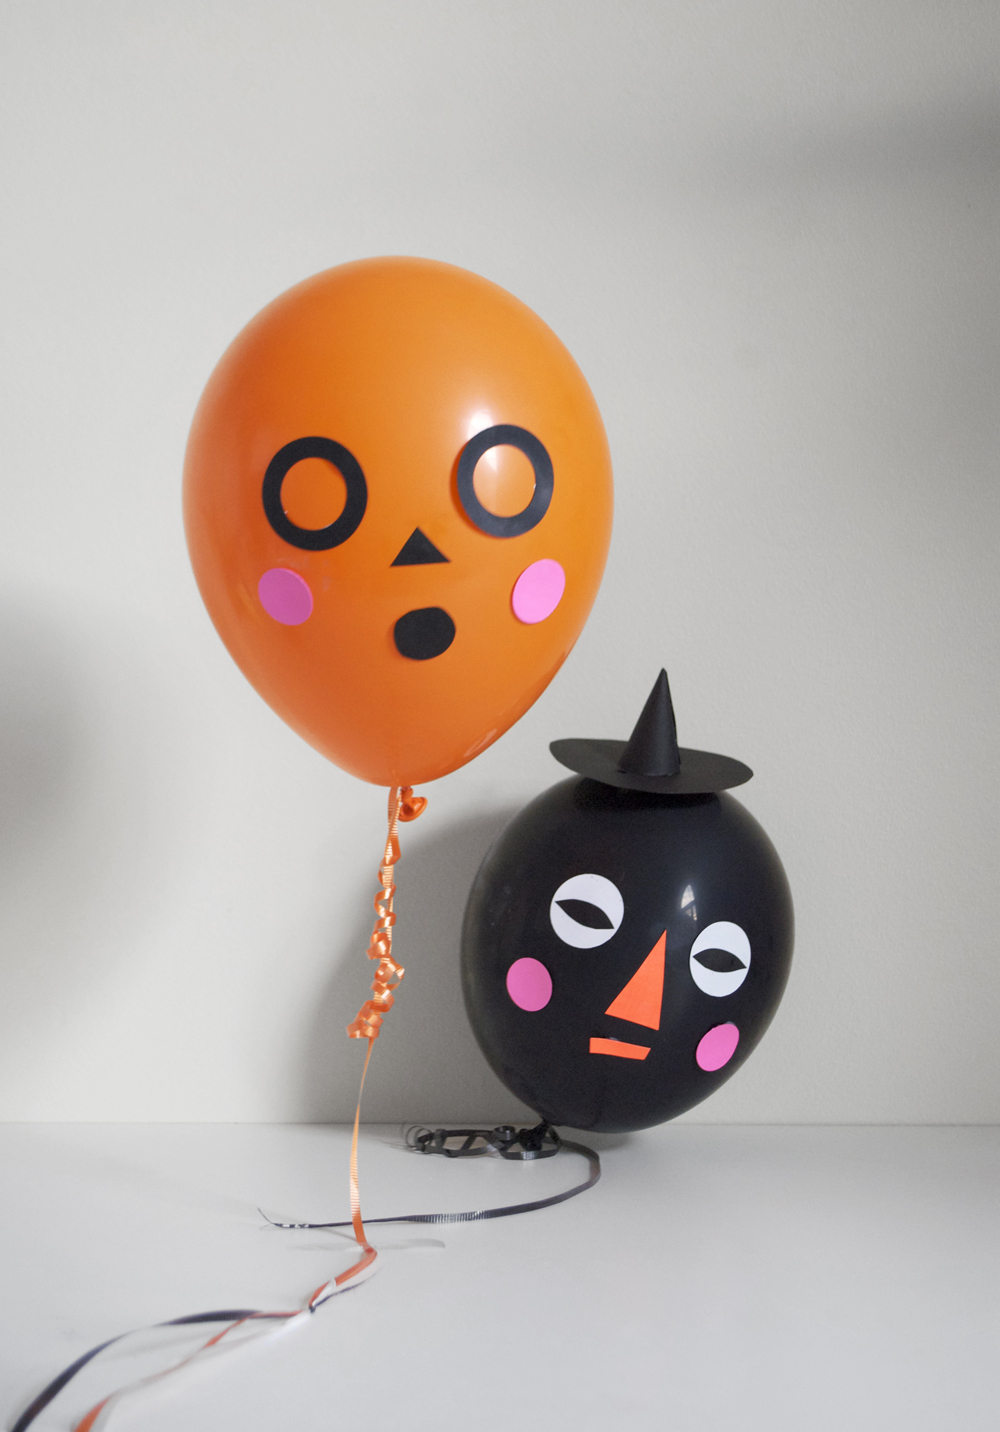 Funny balloon faces - Make Some Silly And Simple Balloon Faces This Halloween These Funny Faces Are A Festive And Super Simple Way To Decorate Your House For A Halloween Party